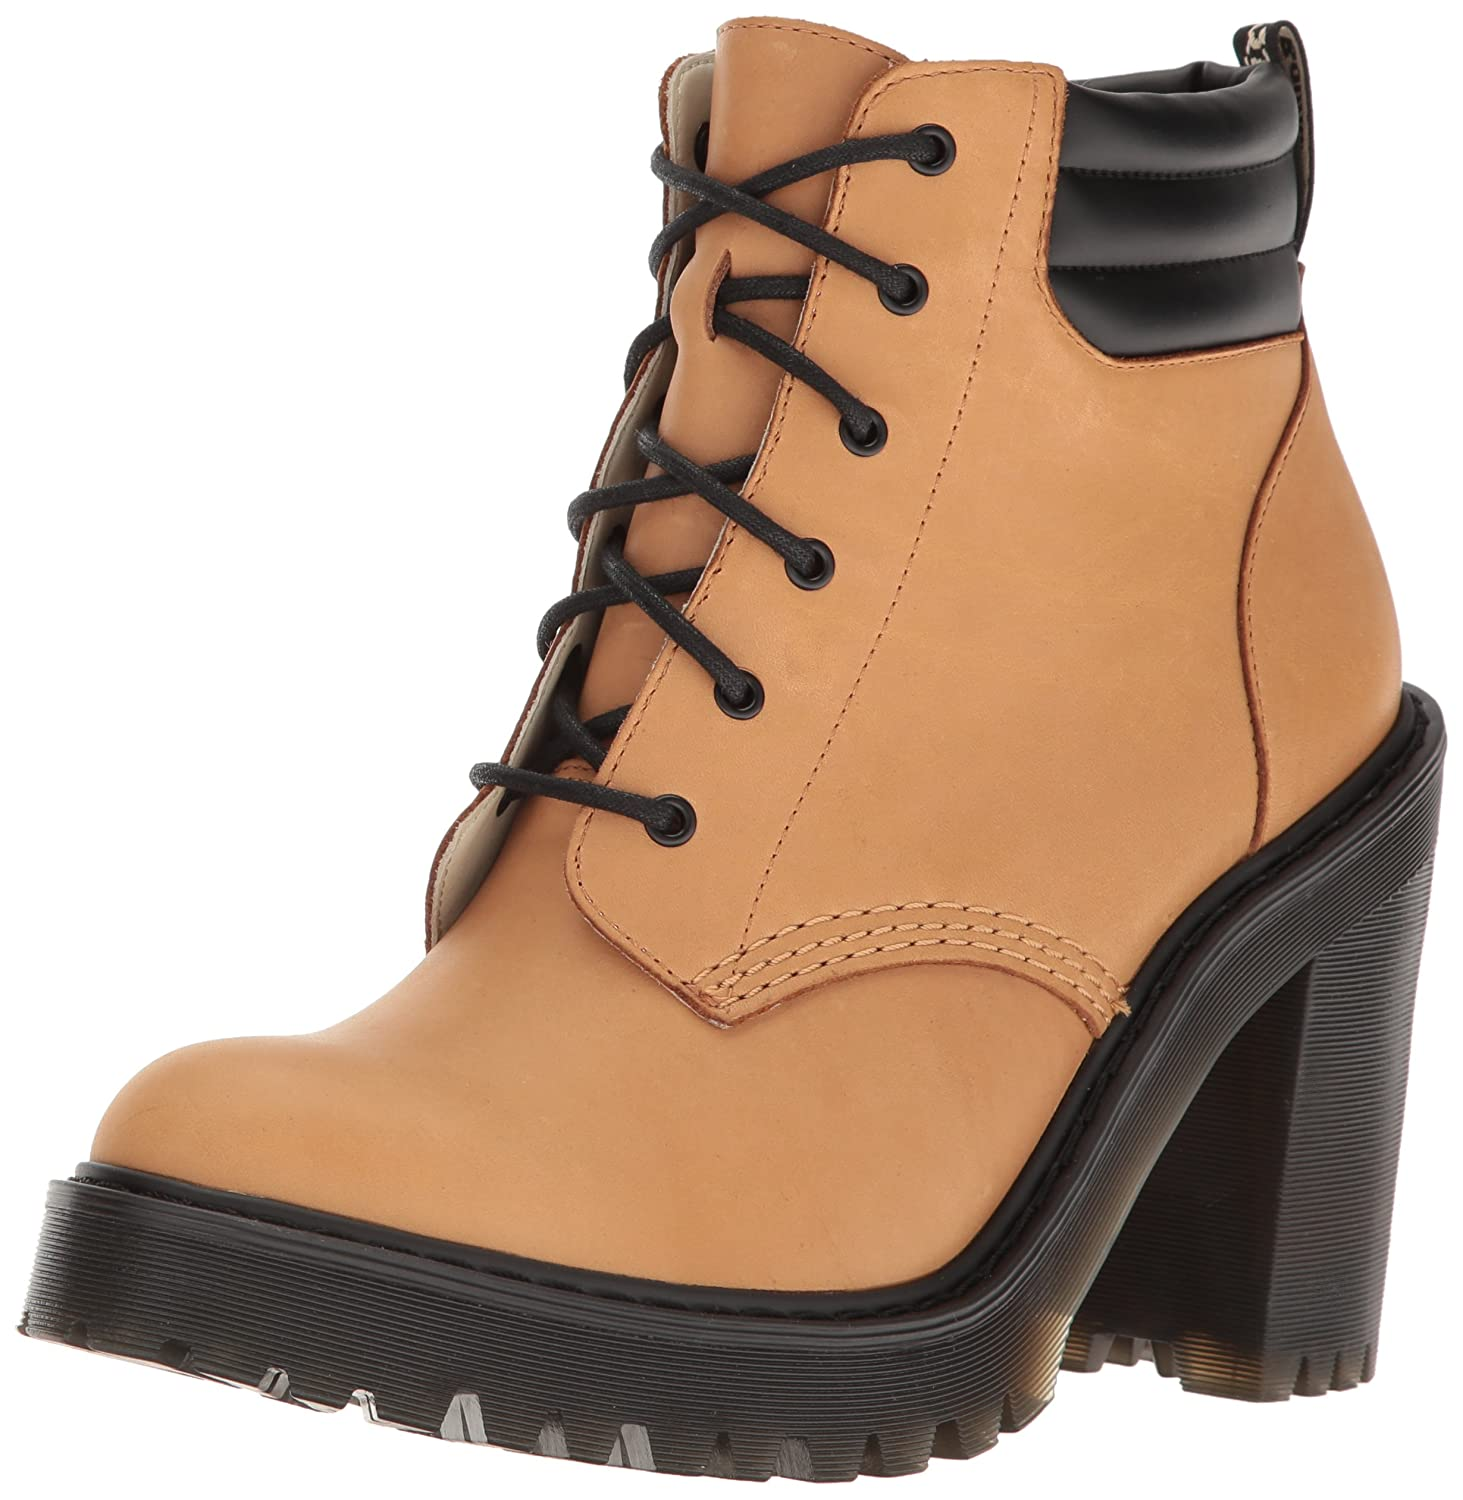 Dr. Martens Women's Persephone Ankle Bootie B01IDYQITQ 5 UK/7 M US|Tan